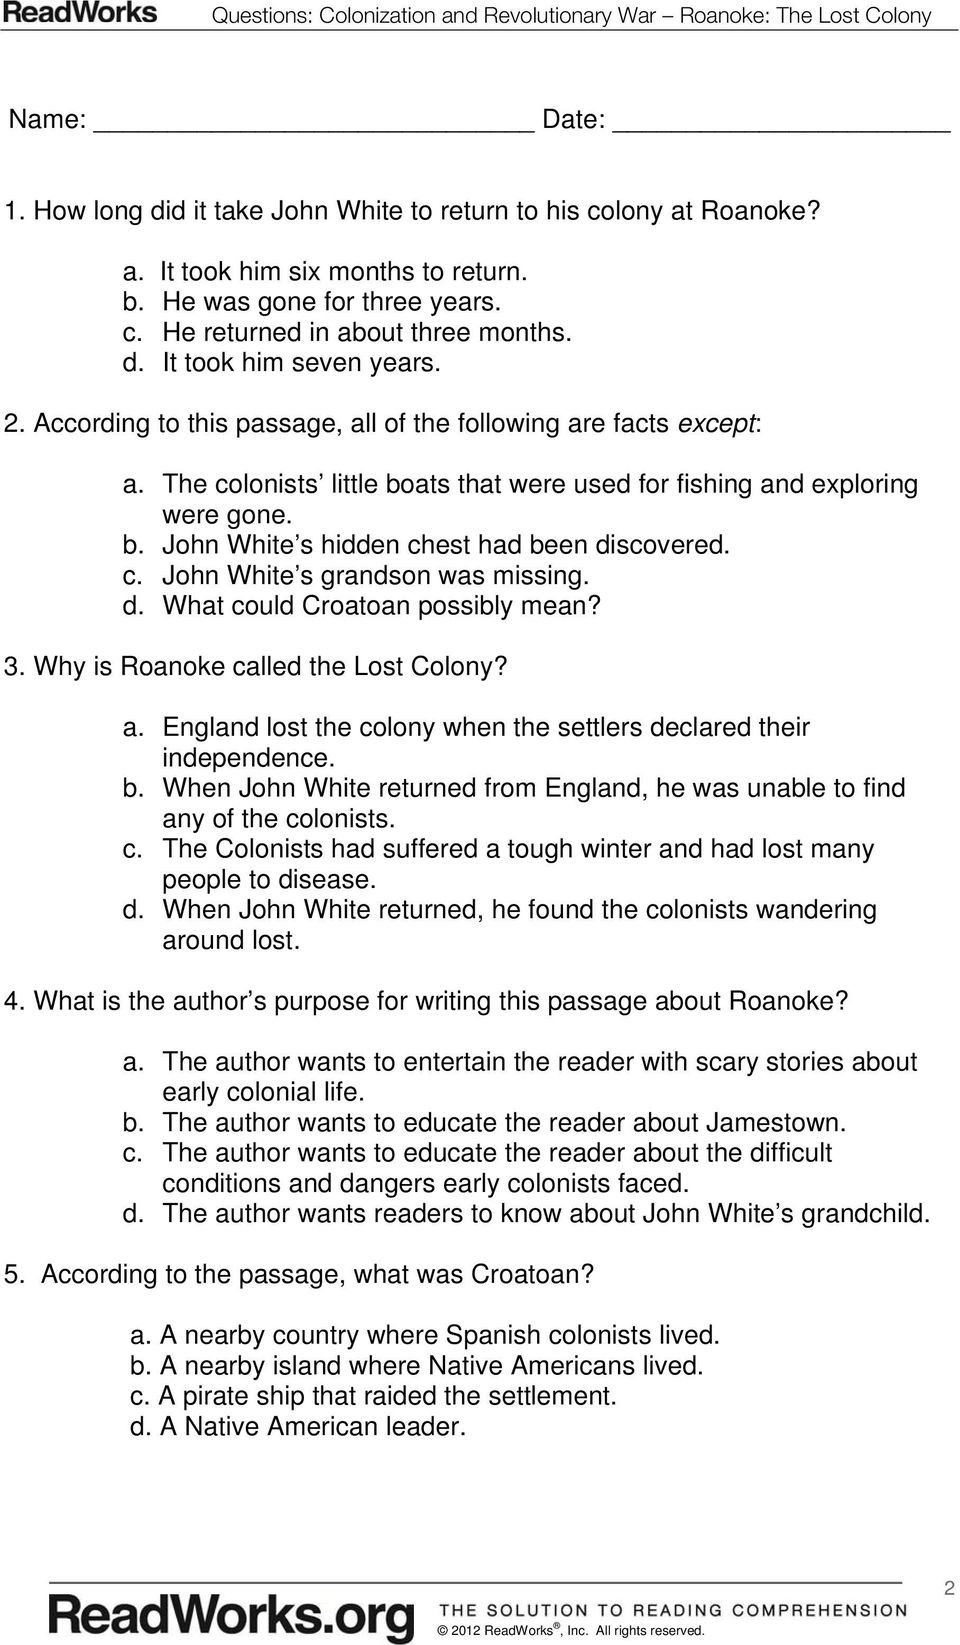 small resolution of Jamestown Colony Worksheet 5th Grade in 2020   5th grade worksheets